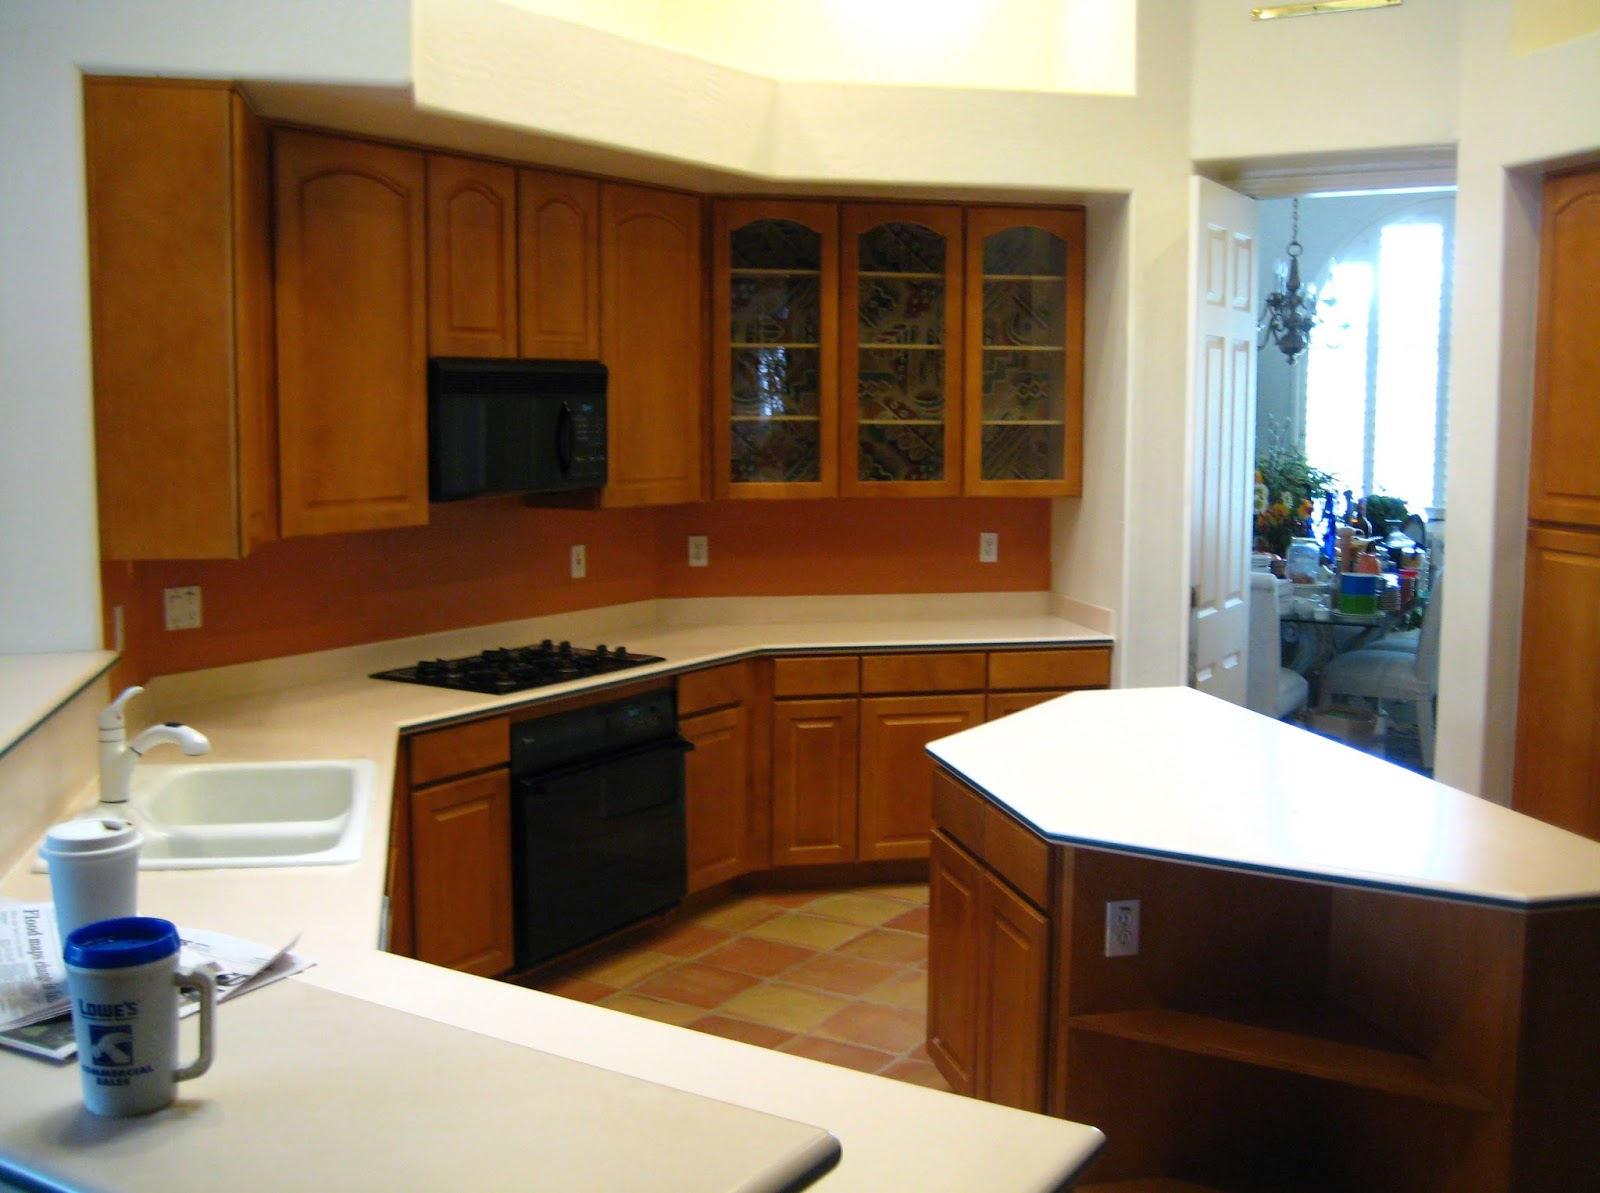 Do it yourself diy kitchen remodel on a budget home for Renovate a kitchen on a budget